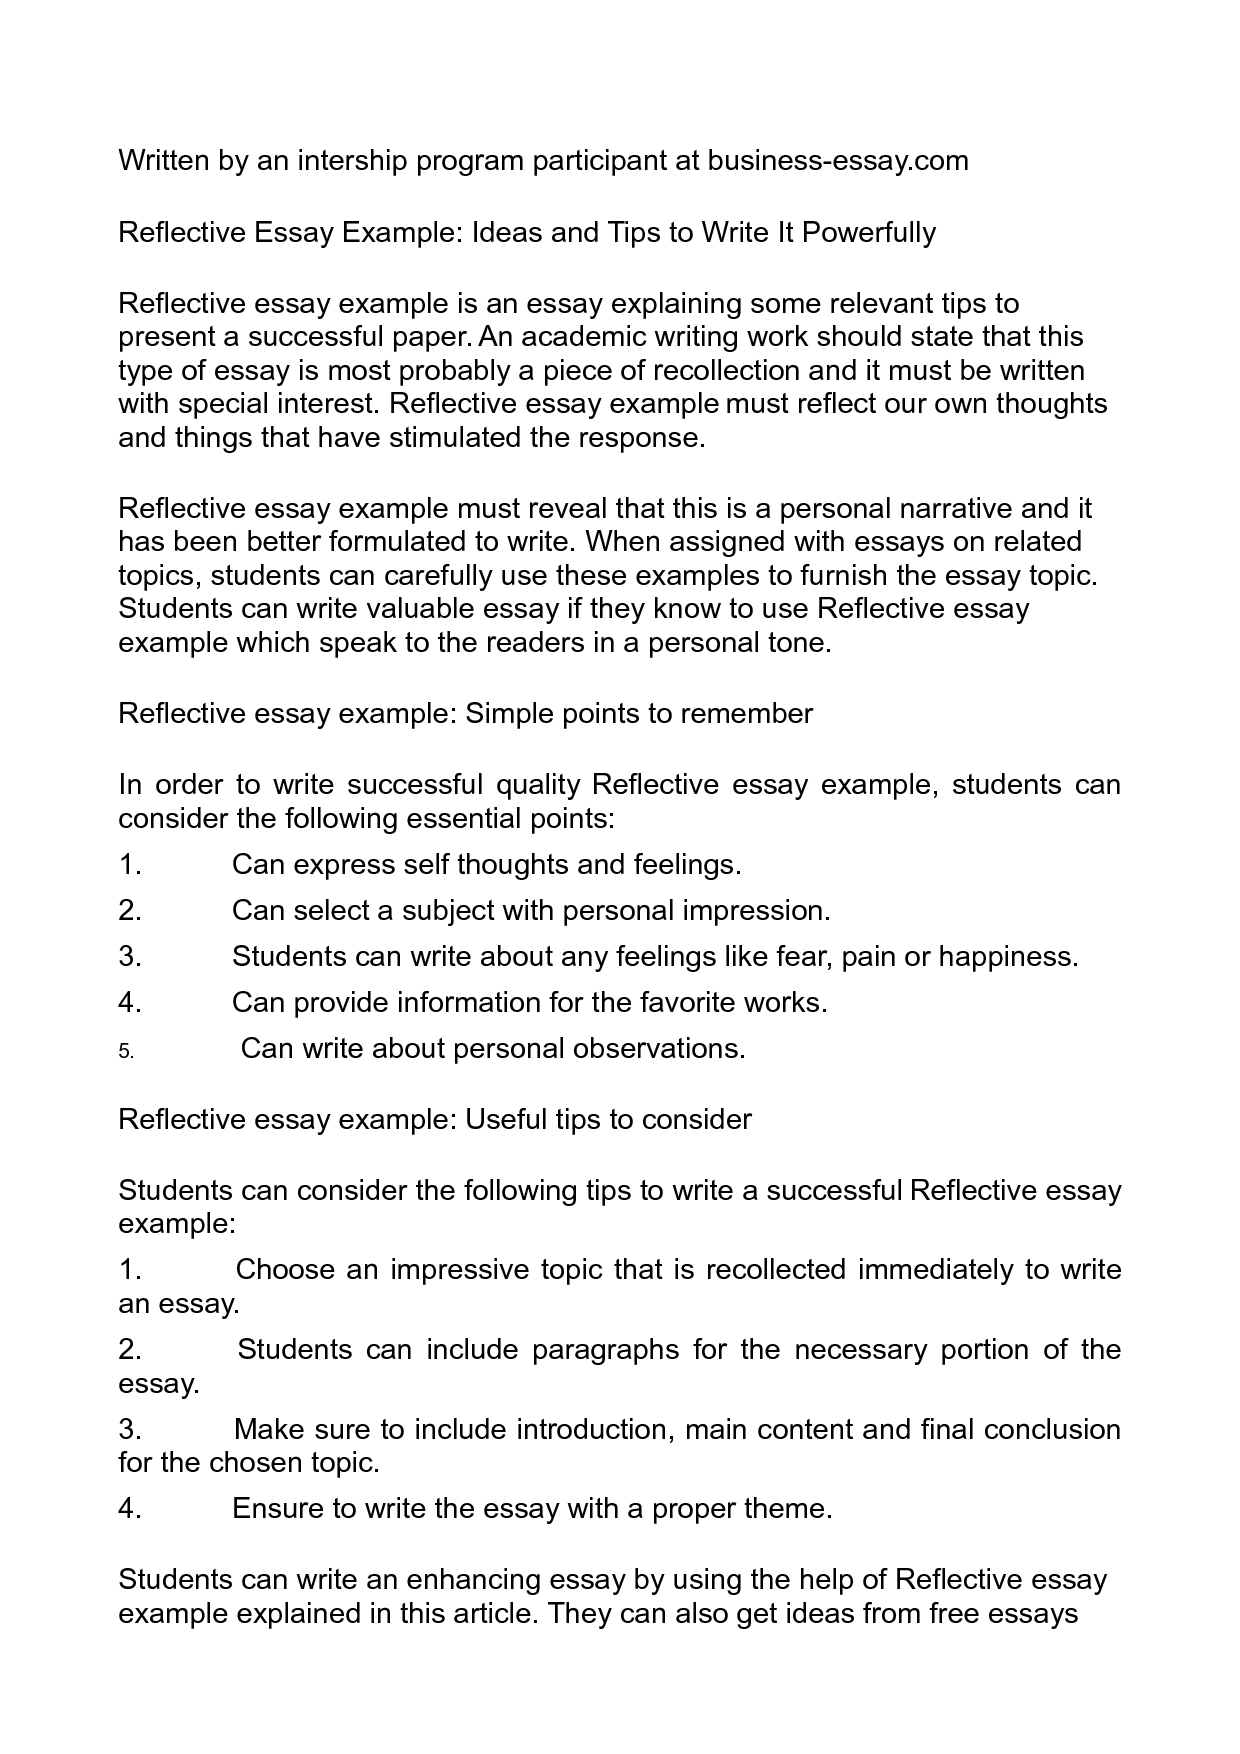 006 Reflective Essay Definition 1btuopqhuu Excellent Pdf Meaning In Telugu Personal Reflection Full